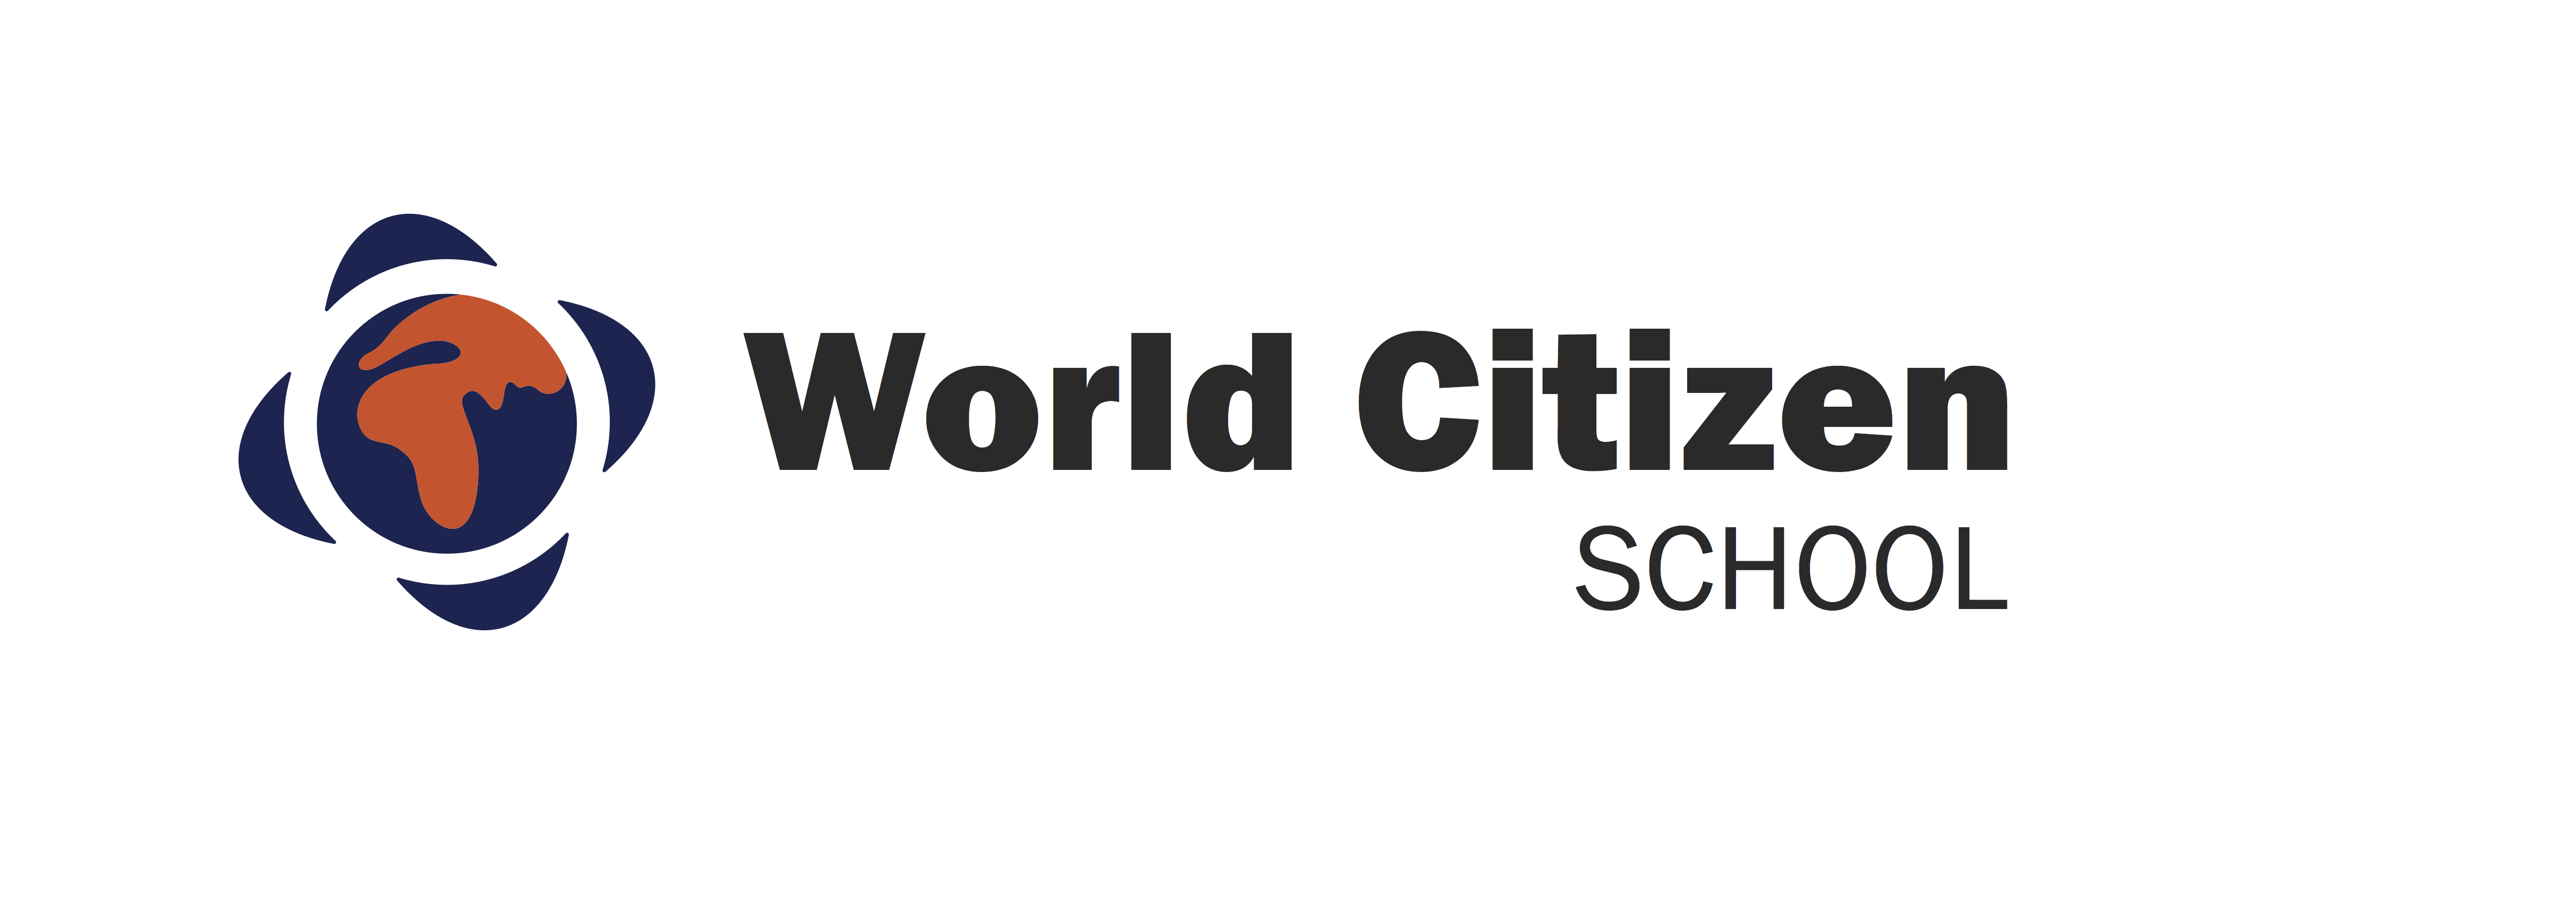 World Citizen School